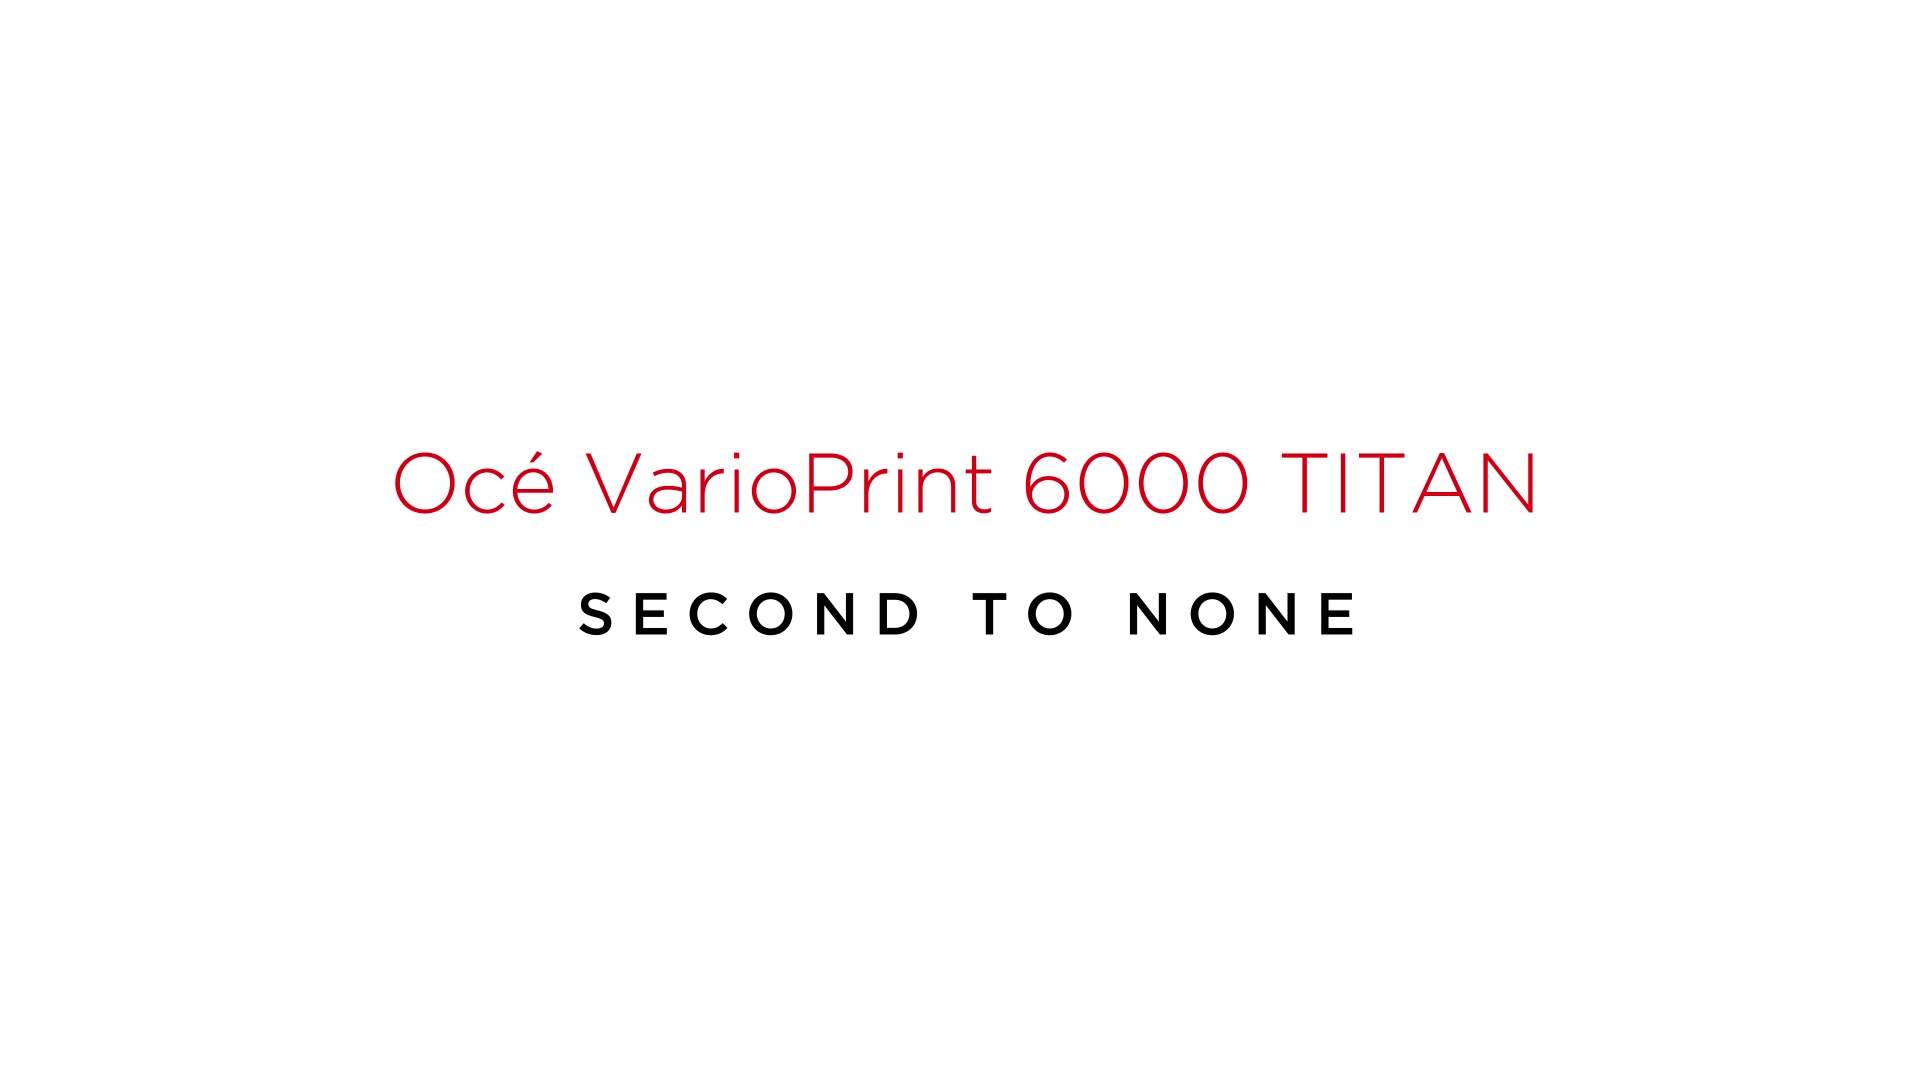 copier_Oce_VarioPrint_6000_TITAN_USA_MP4